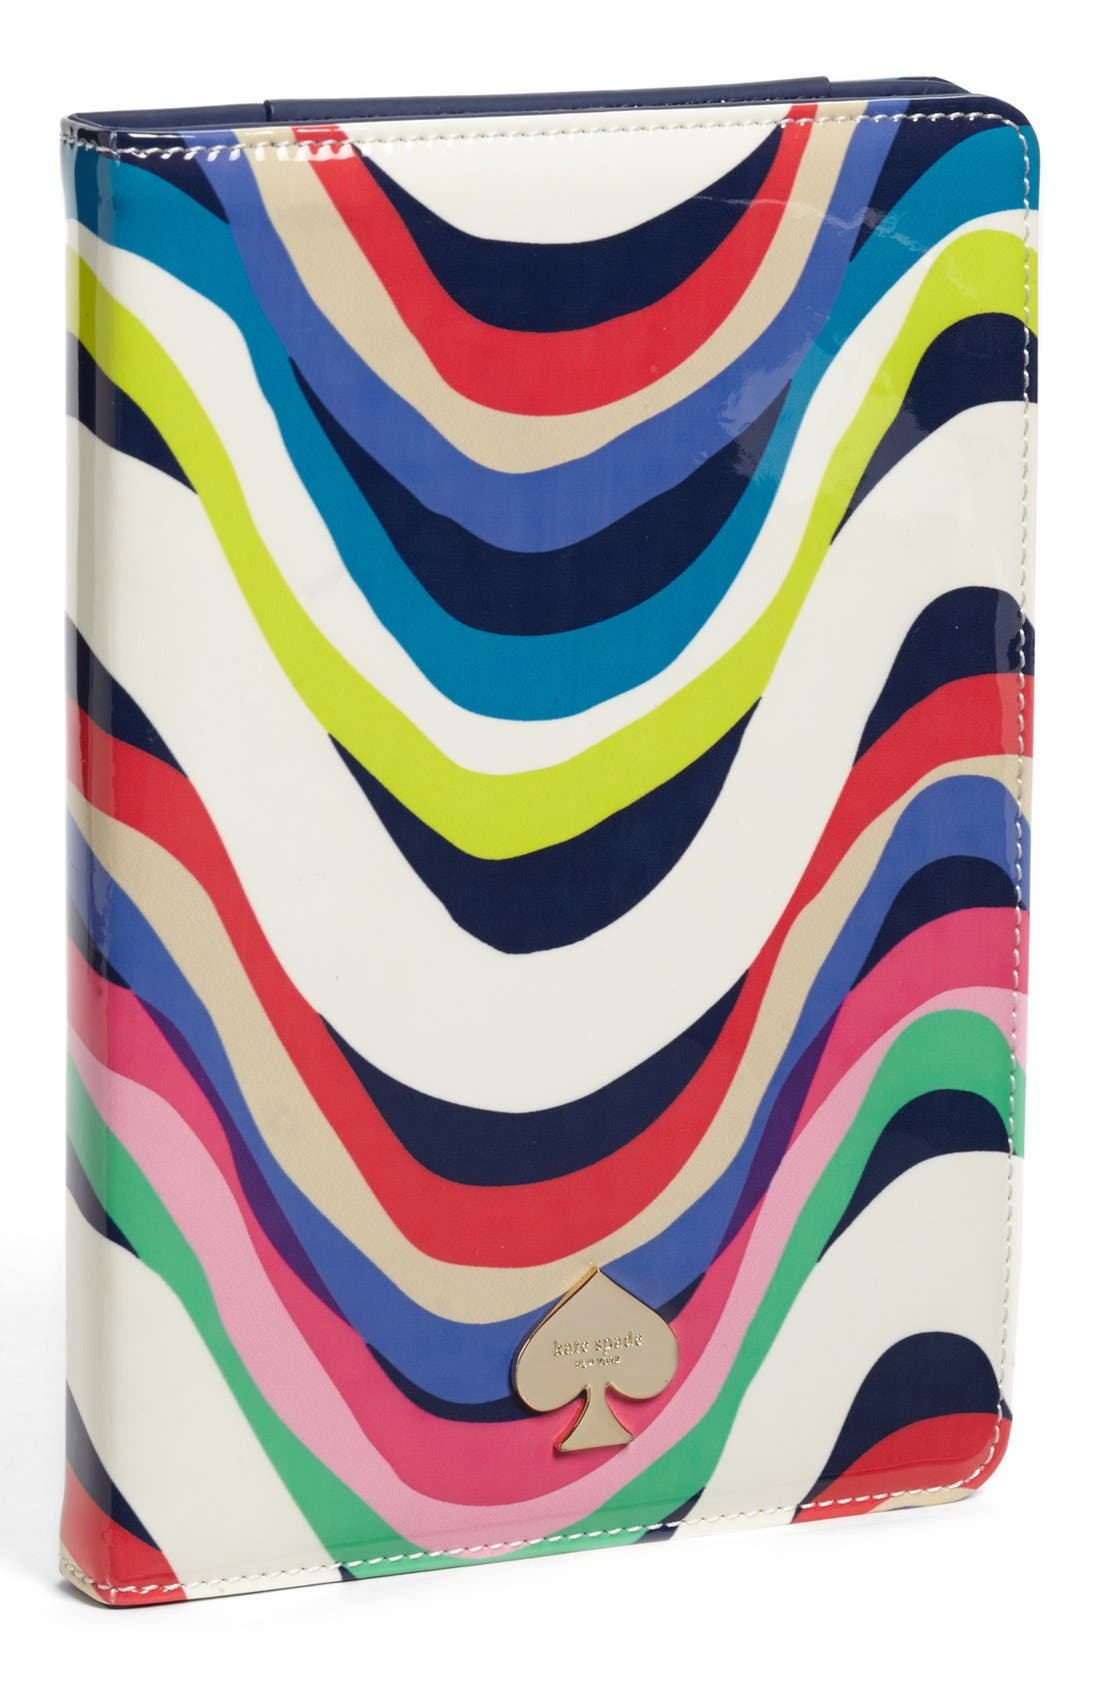 Alternate Image 1 Selected - kate spade new york 'brighton wave' iPad mini folio